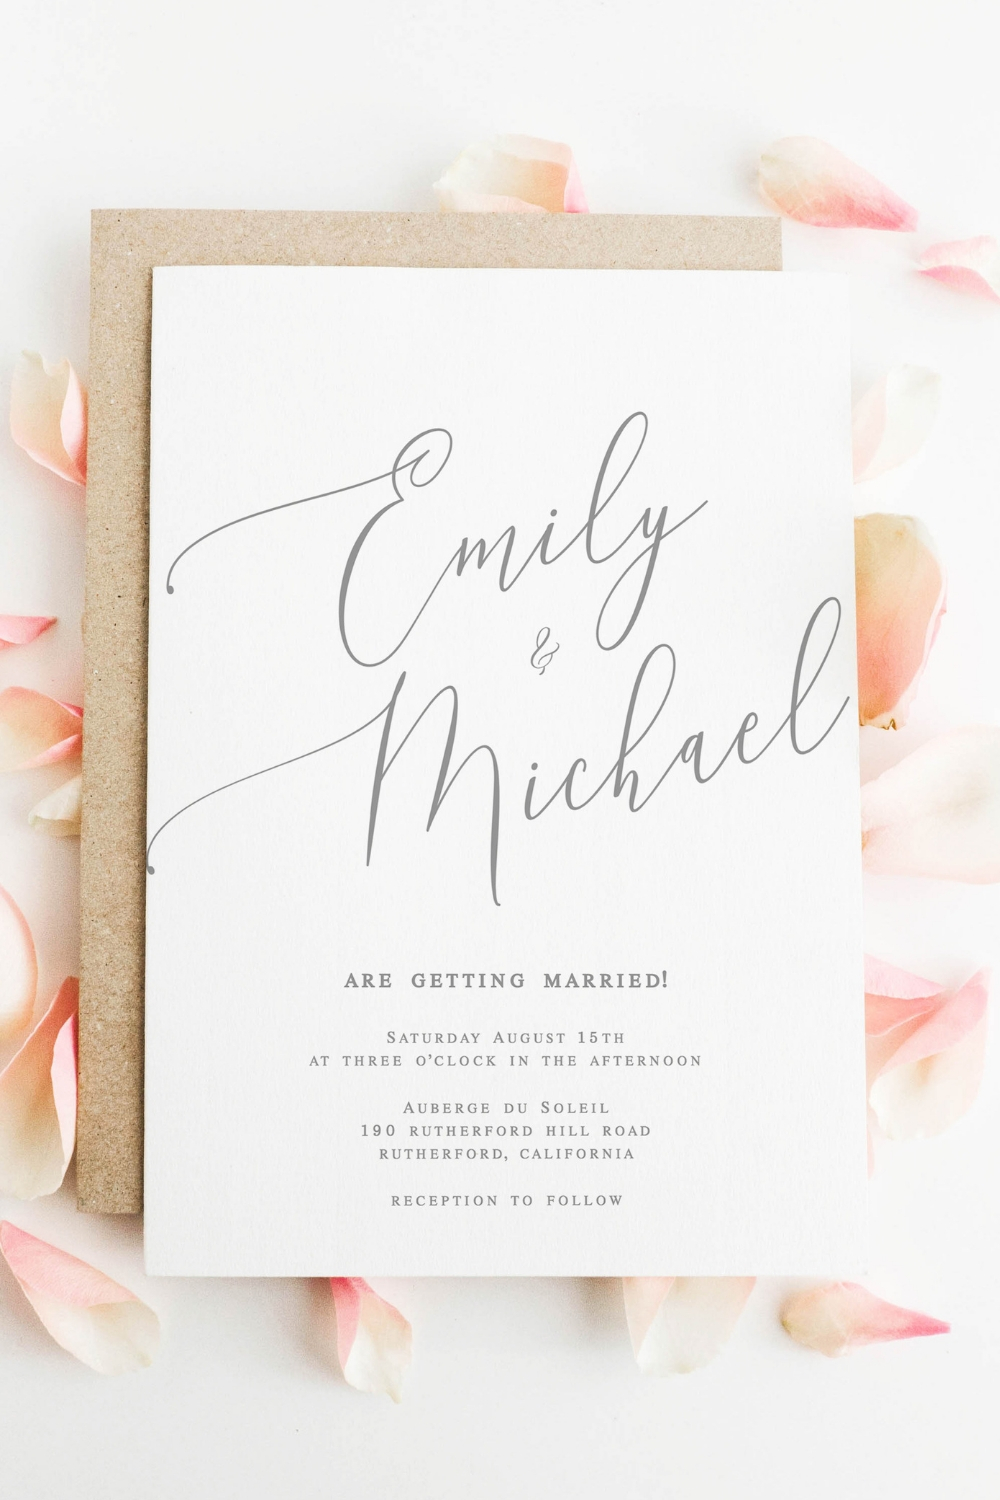 How to Save on Wedding Invitations: 7 Ideas for Creating ...